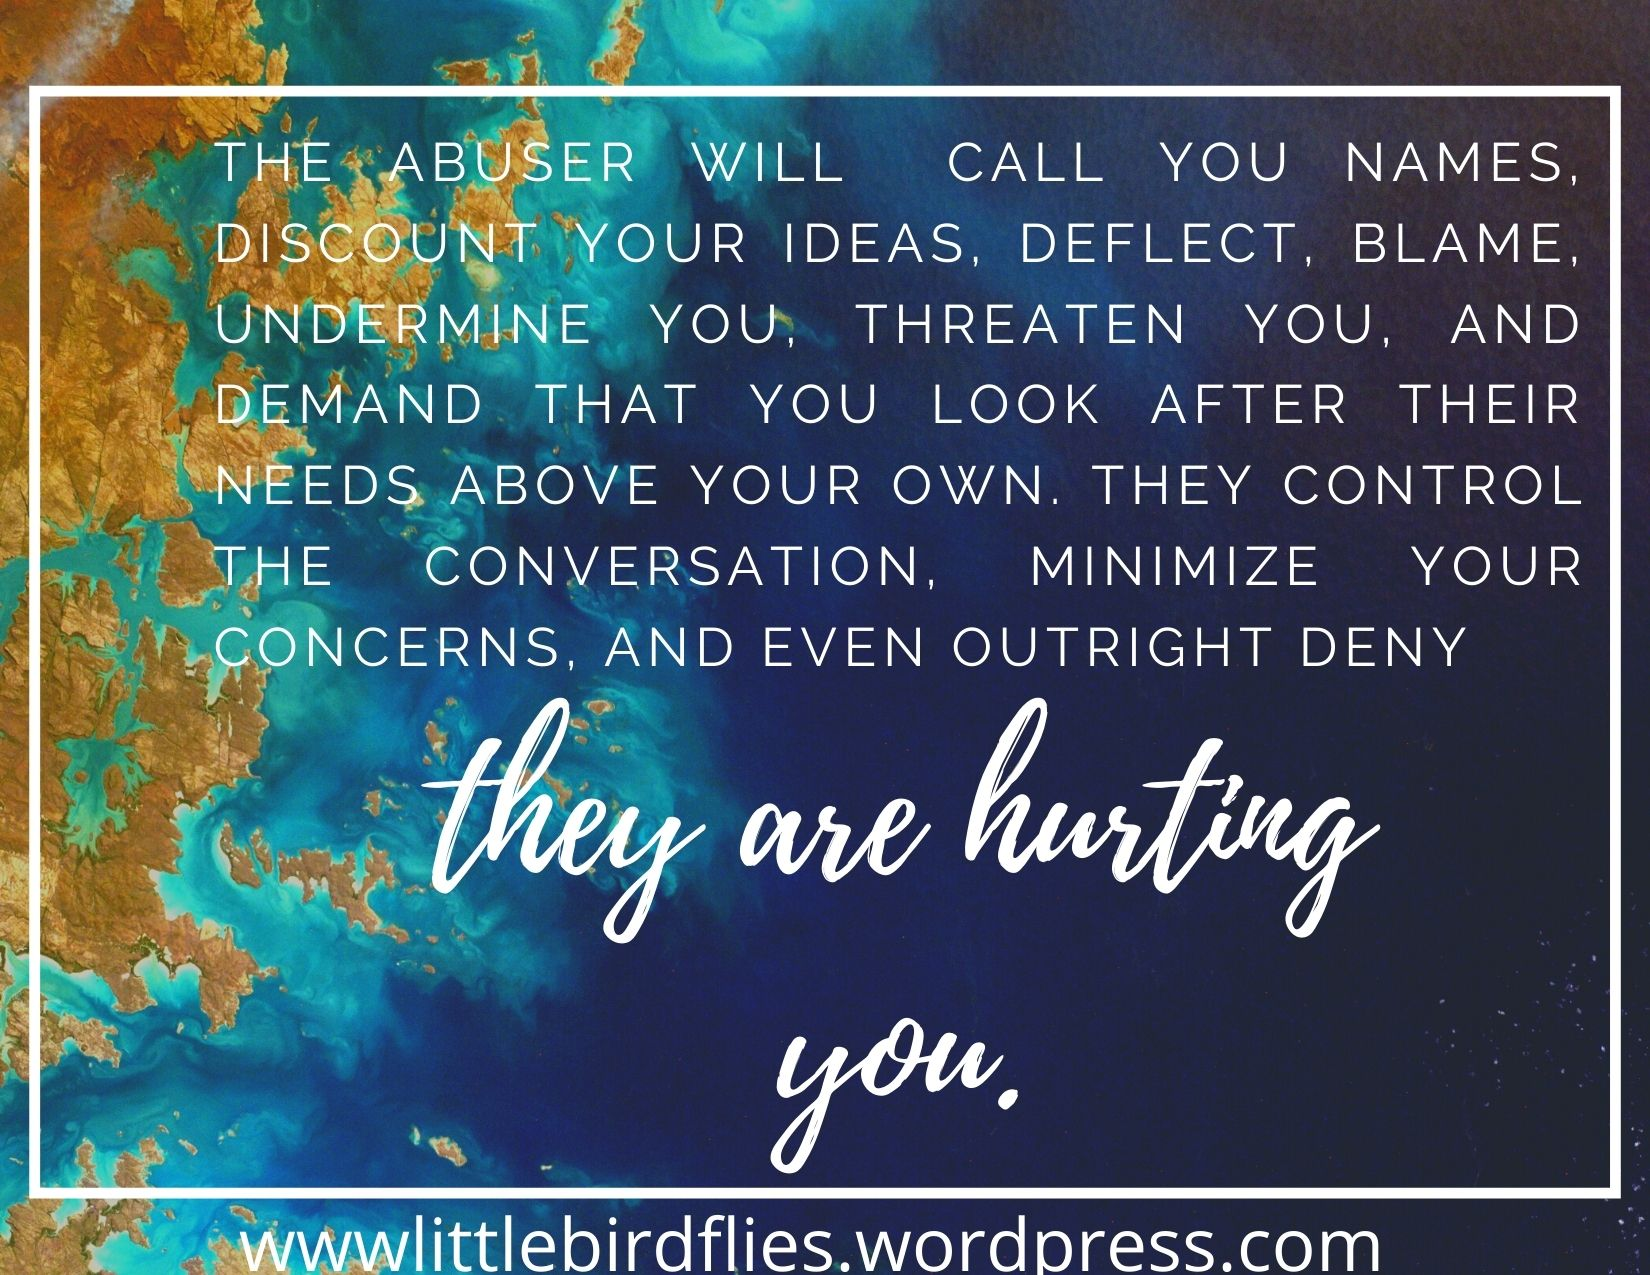 The abuser will call you names, discount your ideas, deflect, blame, undermine you, threaten you, and demand that you look after their needs above your own. They control the conversation, minimize your concerns, an